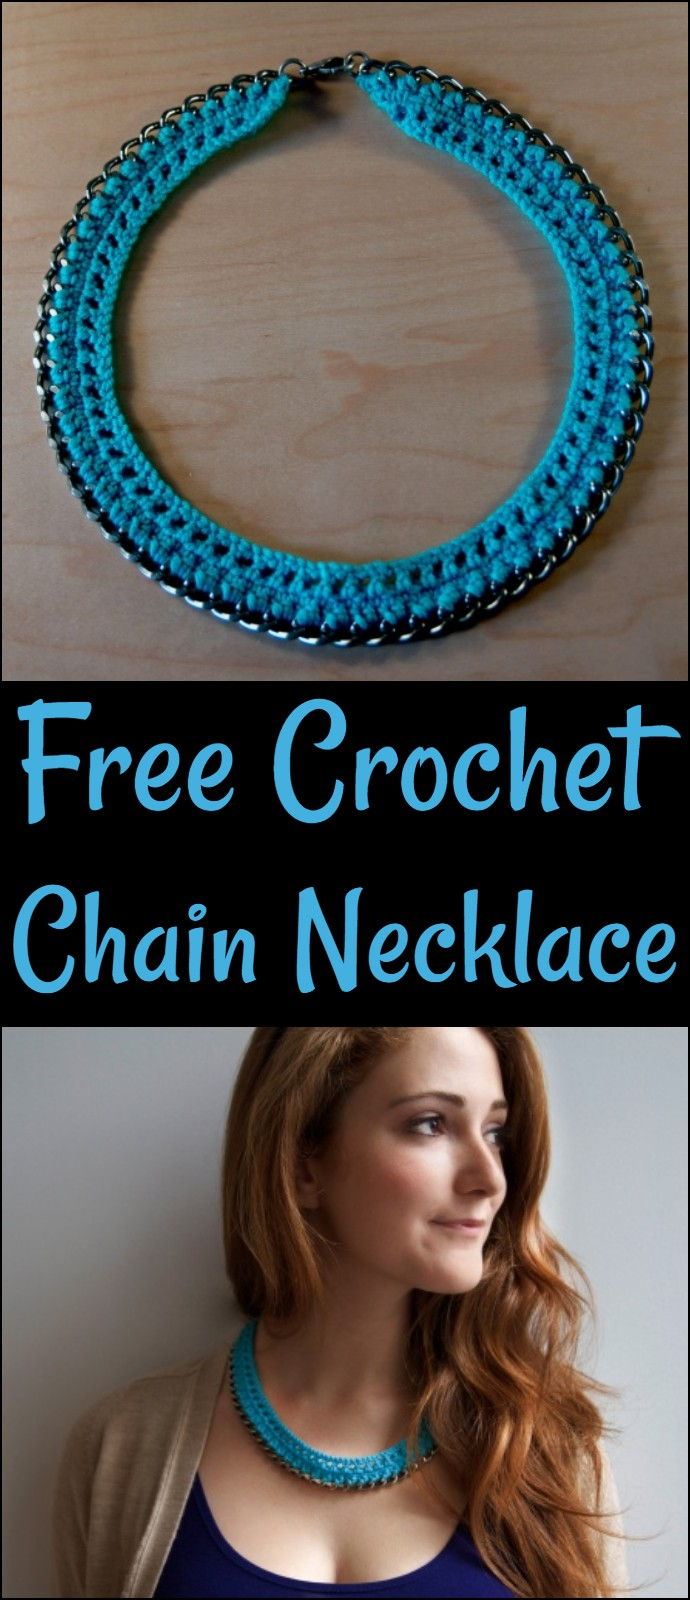 Free Crochet Chain Necklace